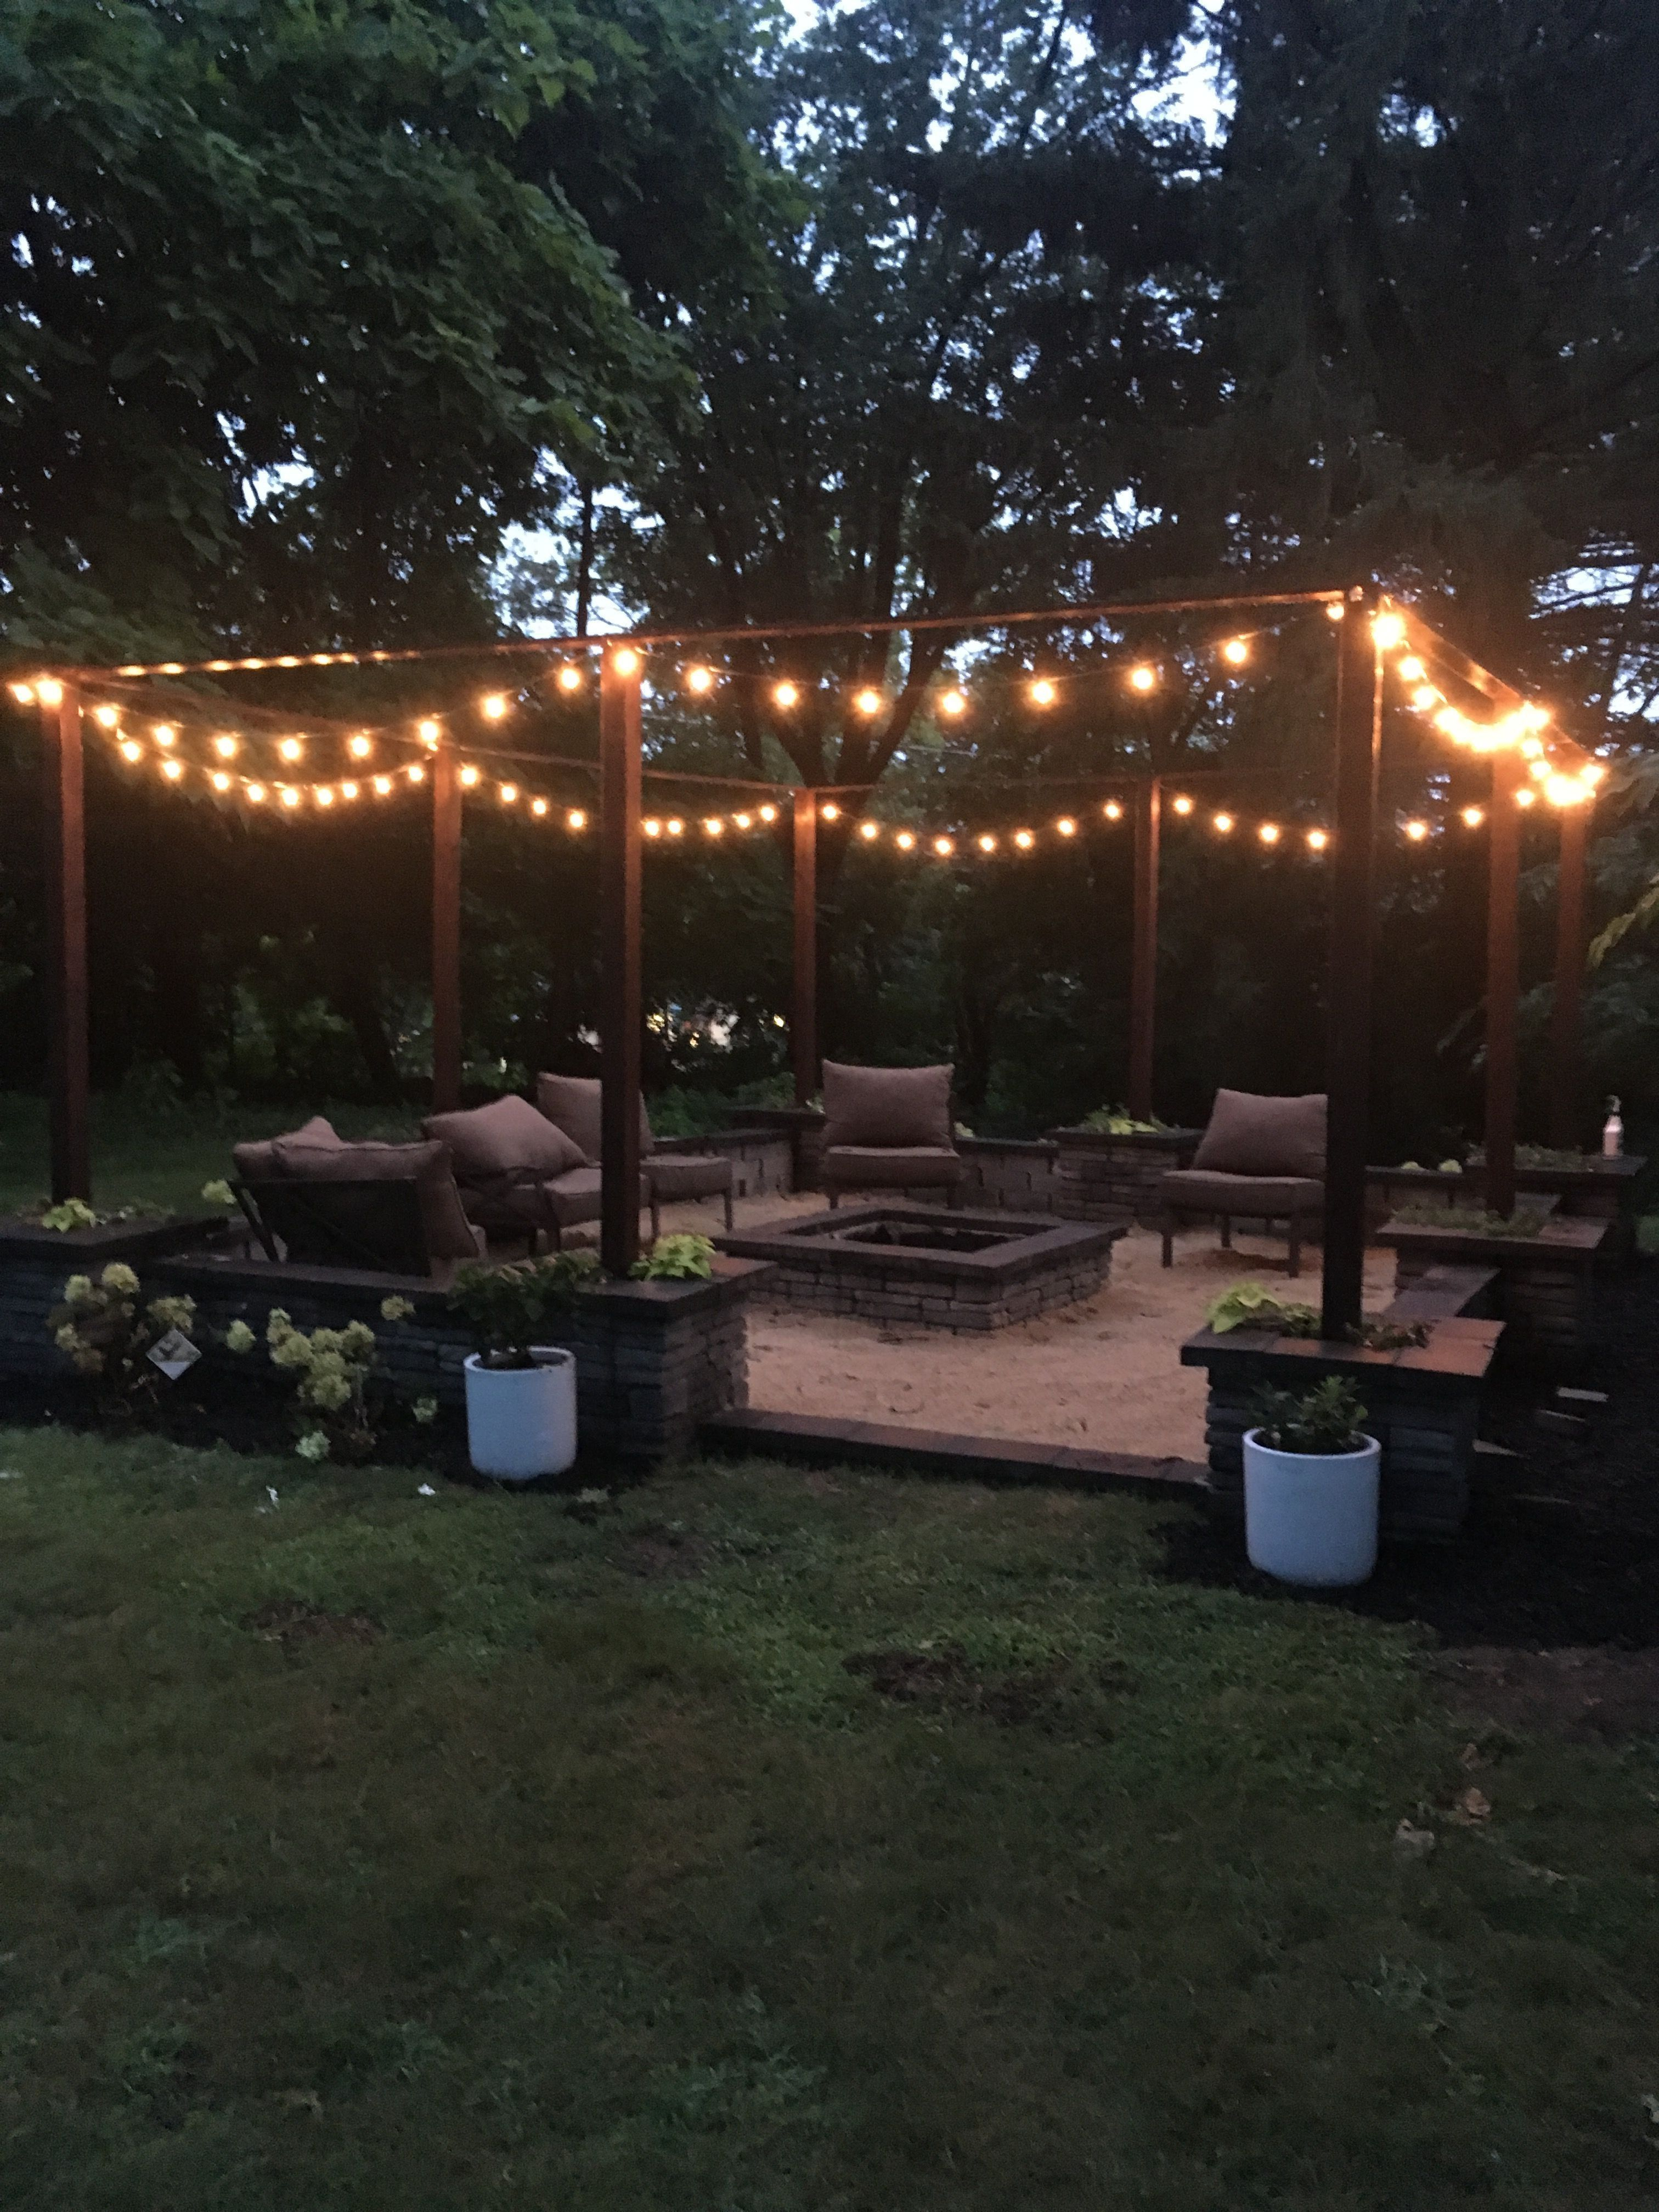 25 DIY FIRE PIT PLAN IDEAS WITH LIGHTING FOR FRONT YARD